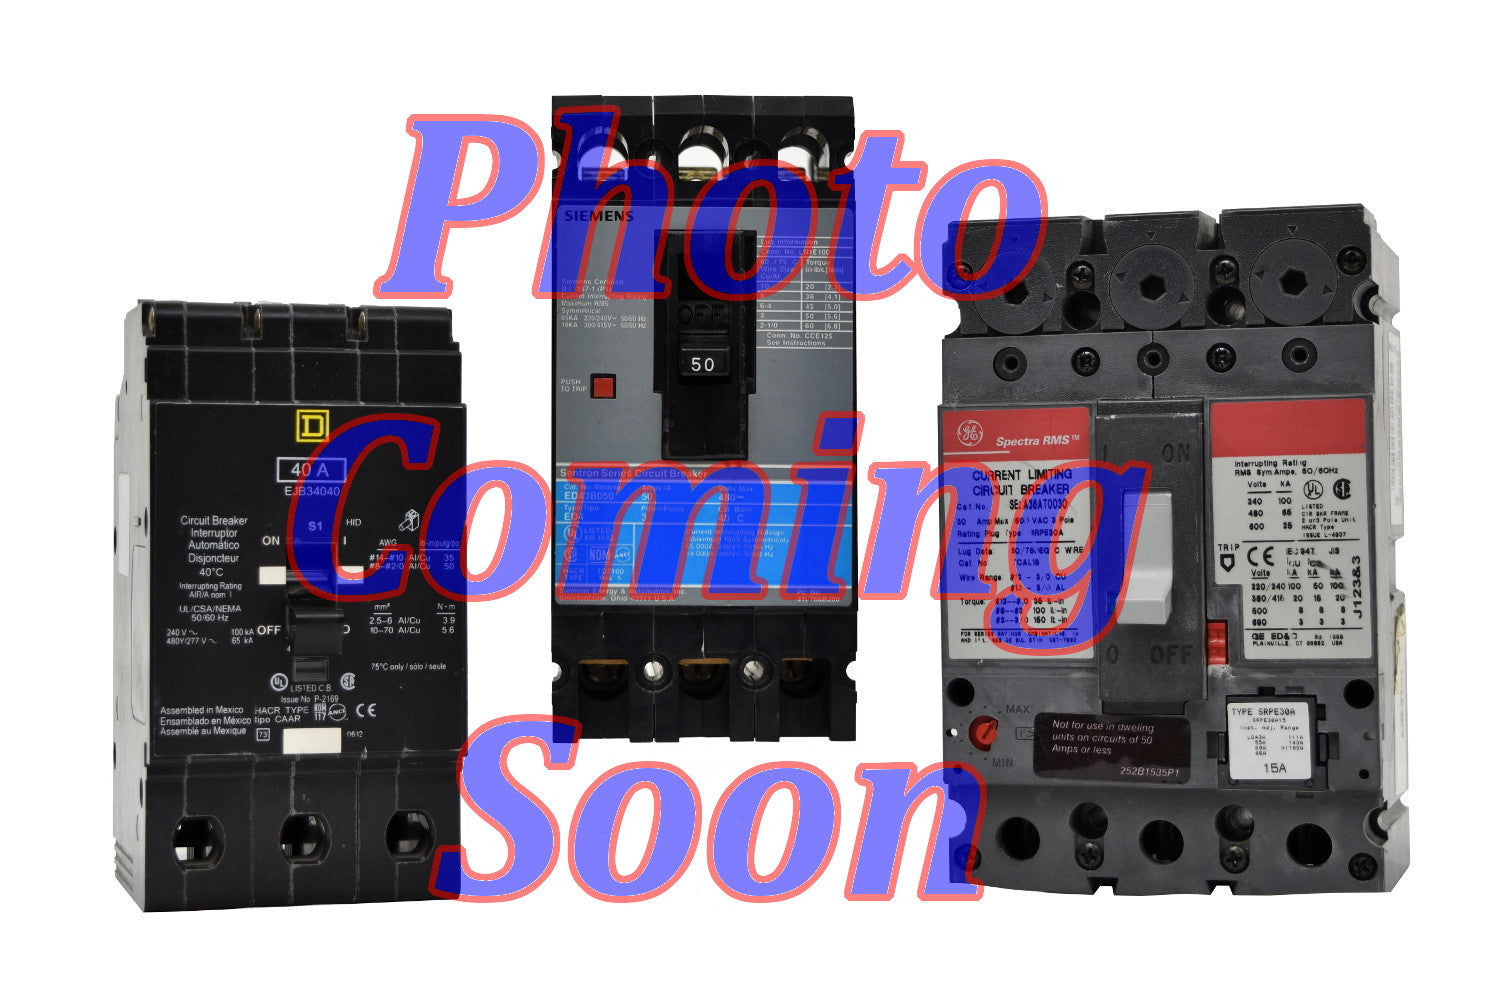 General Electric FCS326TE080R1 Circuit Breakers